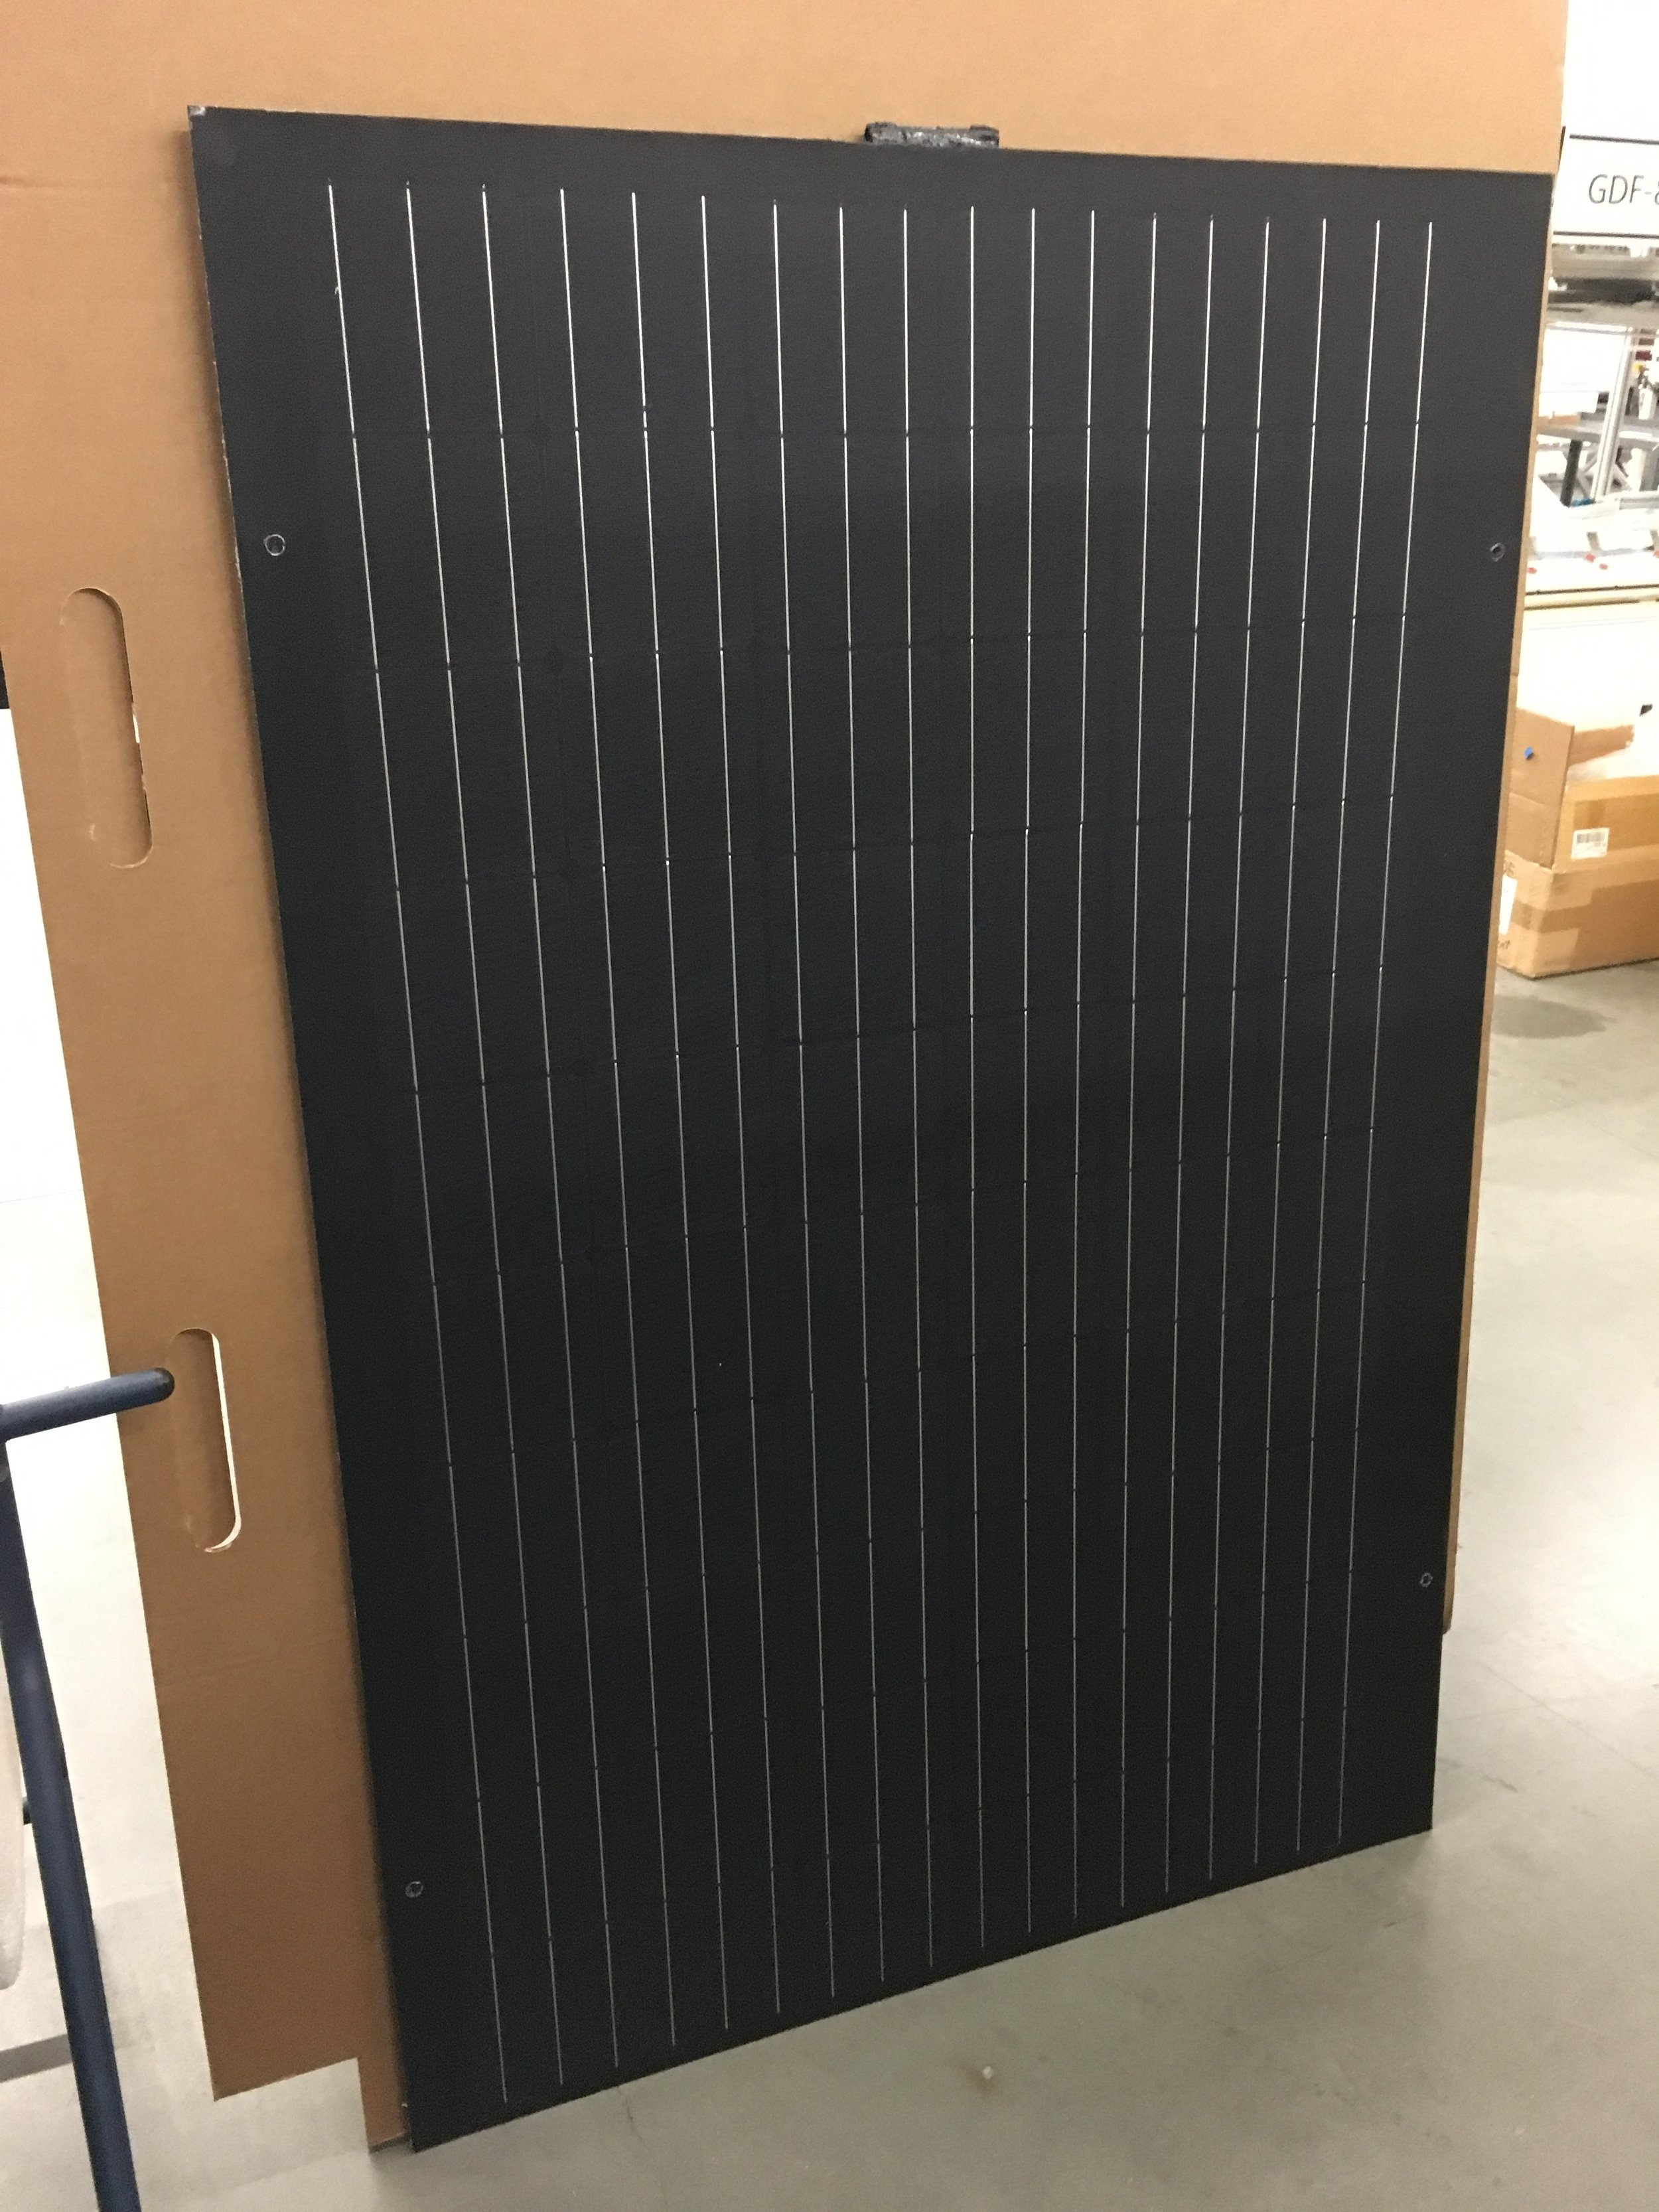 300W panel with narrow profile and edge connectors